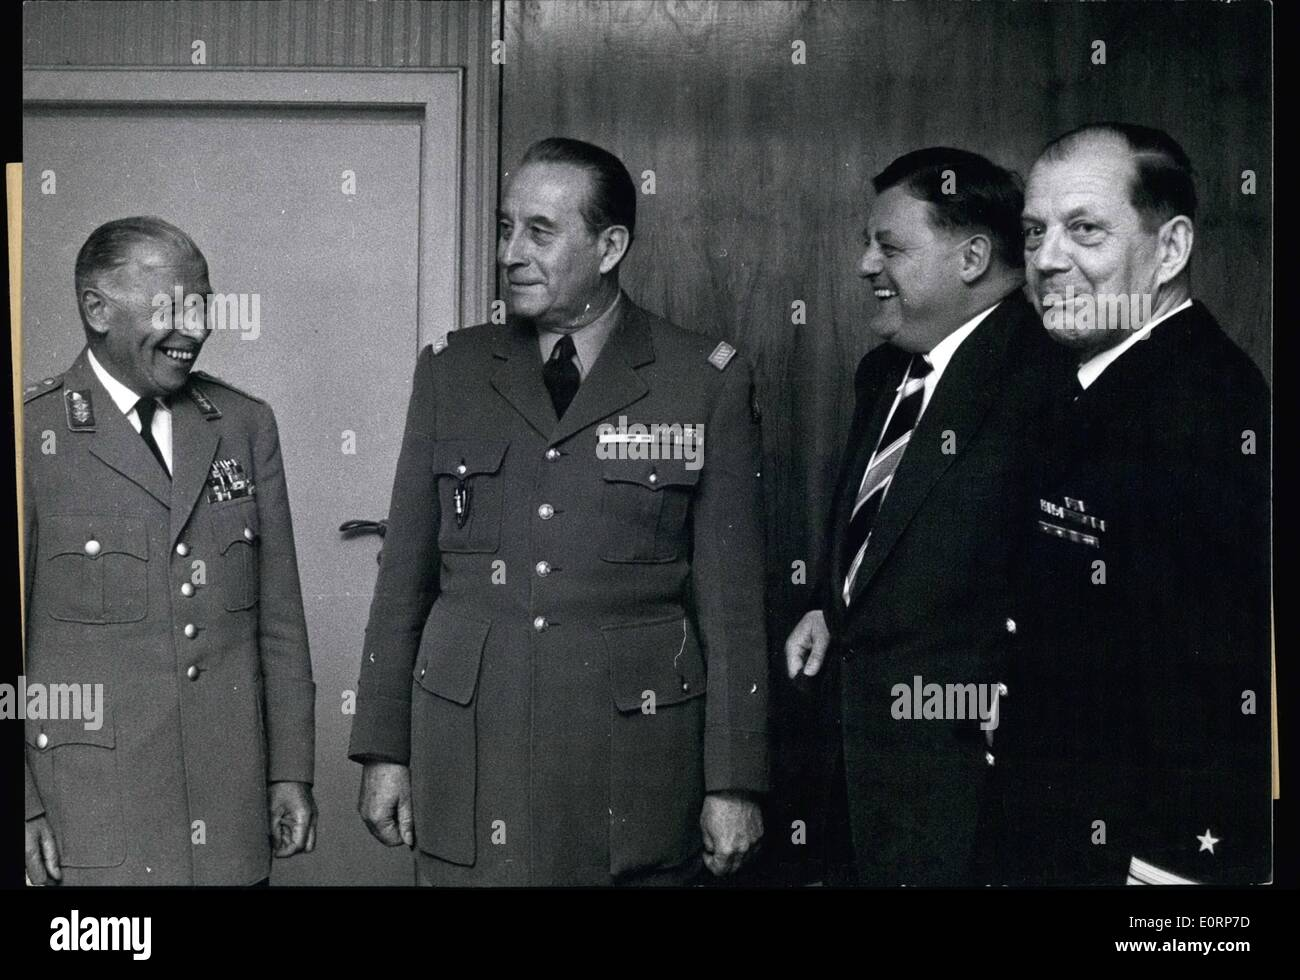 Apr. 04, 1960 - Leaving NATO commander criticizes Bonn: On April 26th, NATO commander of central Europe, General Valluy, (Valluy) paid a last visit to Federal Minister of Defence, Strauss (Strauss). General Valluy has been mentioned quite often during the last few days in Bonn. He had criticized the Federal Republic of Germany as she, in his opinion, has not fulfilled her military obligations according to the NATO Plan MC-70 - Stock Image